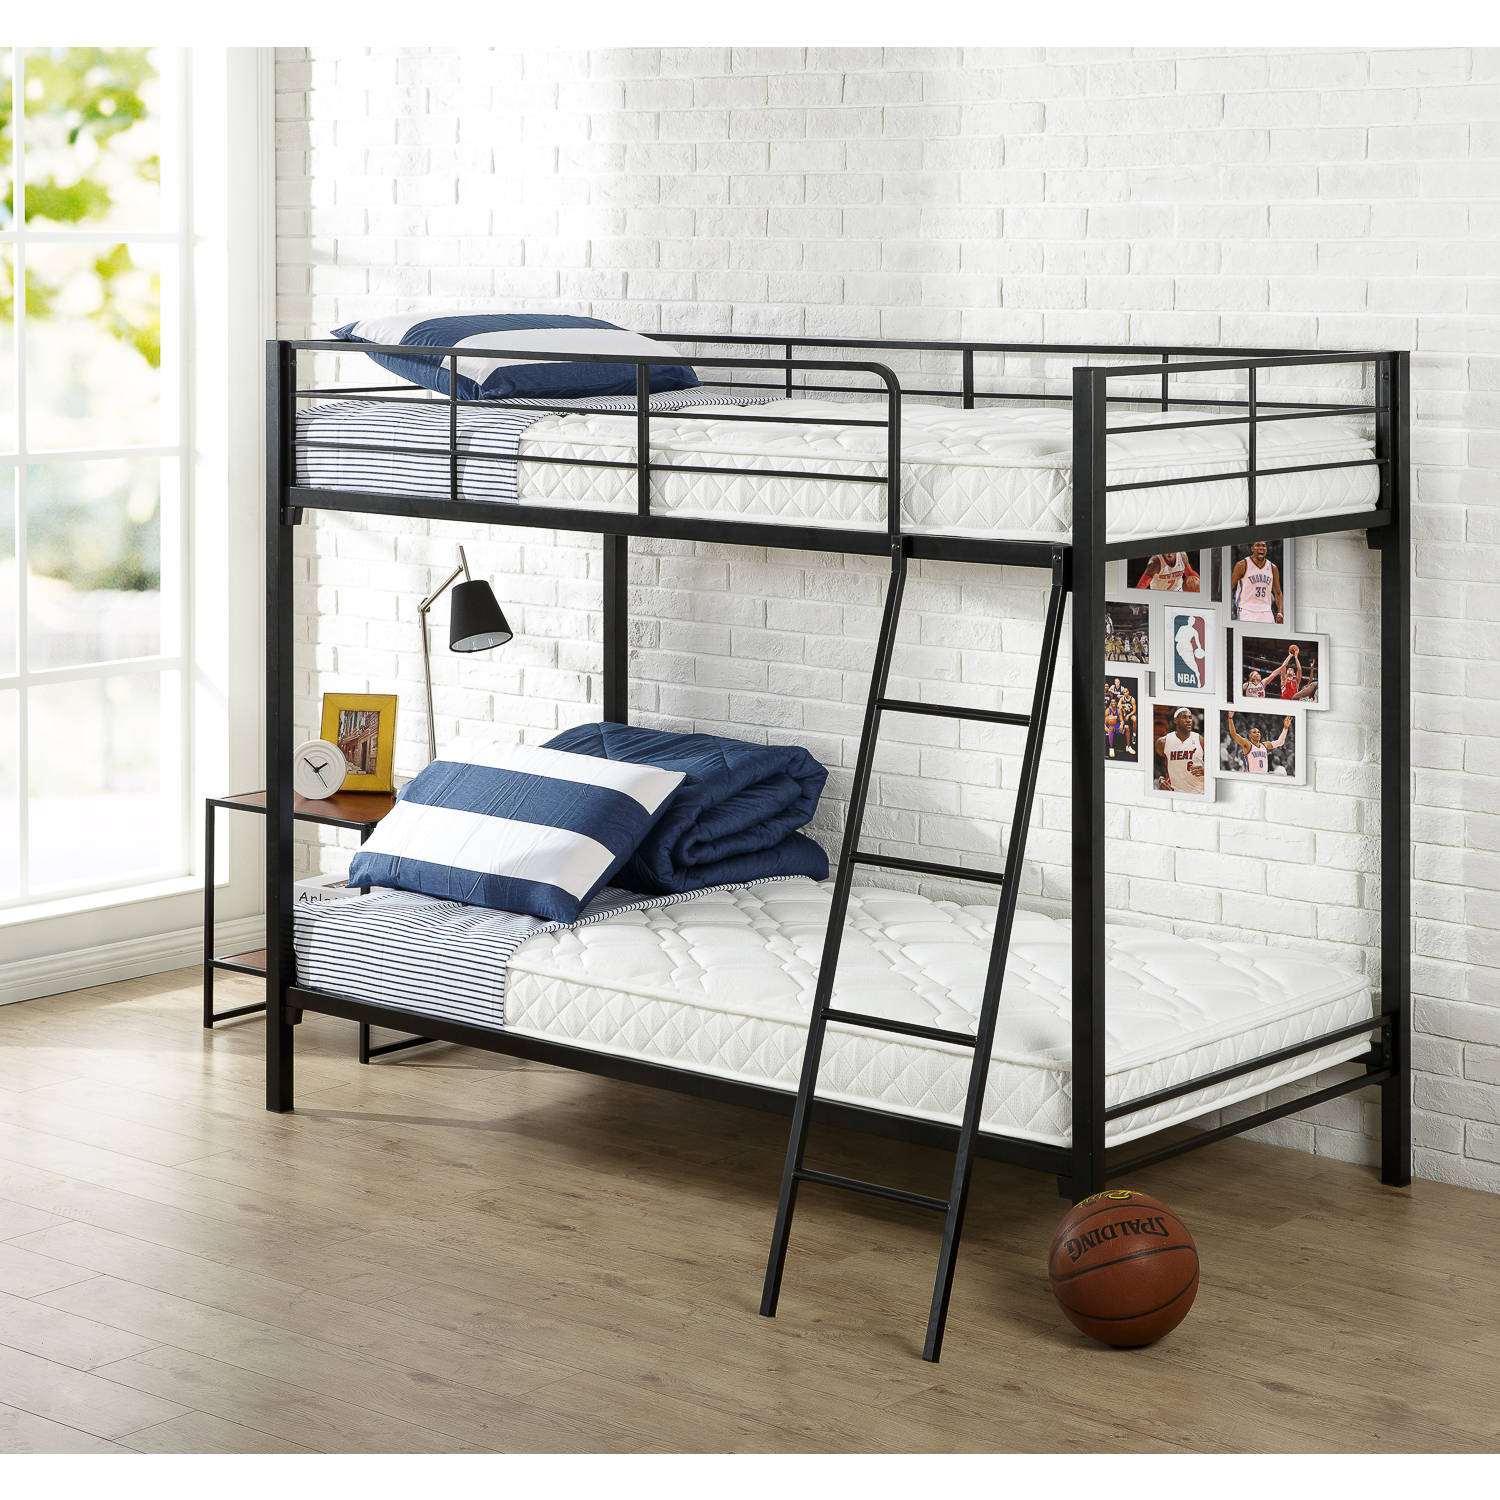 slumber 1 youth 6 39 39 bunk bed mattress with moisture barrier multiple sizes. Black Bedroom Furniture Sets. Home Design Ideas